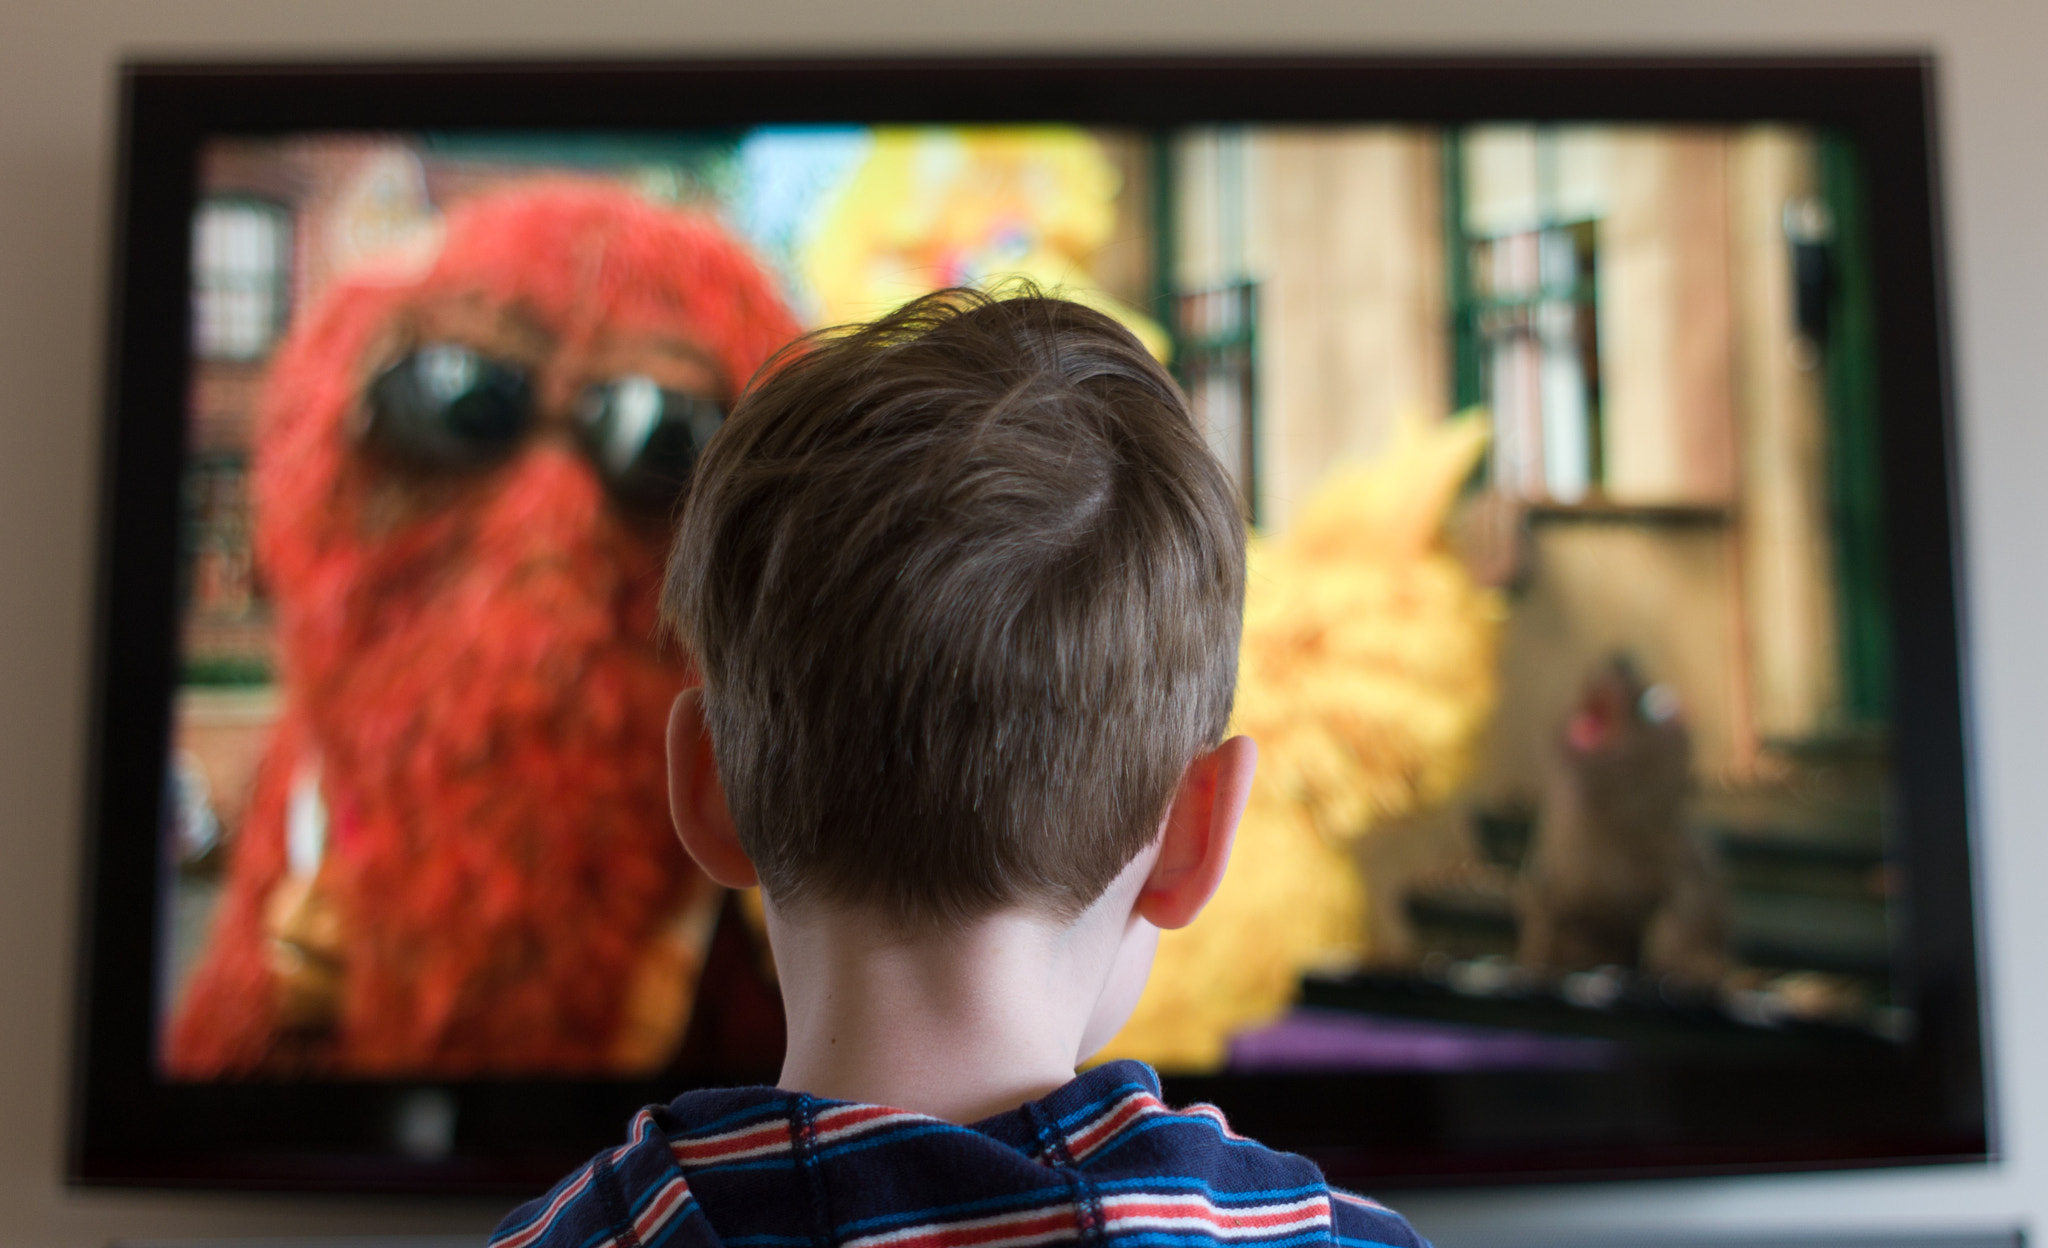 Photograph Watching Sesame Street by Darren Rowse on 500px